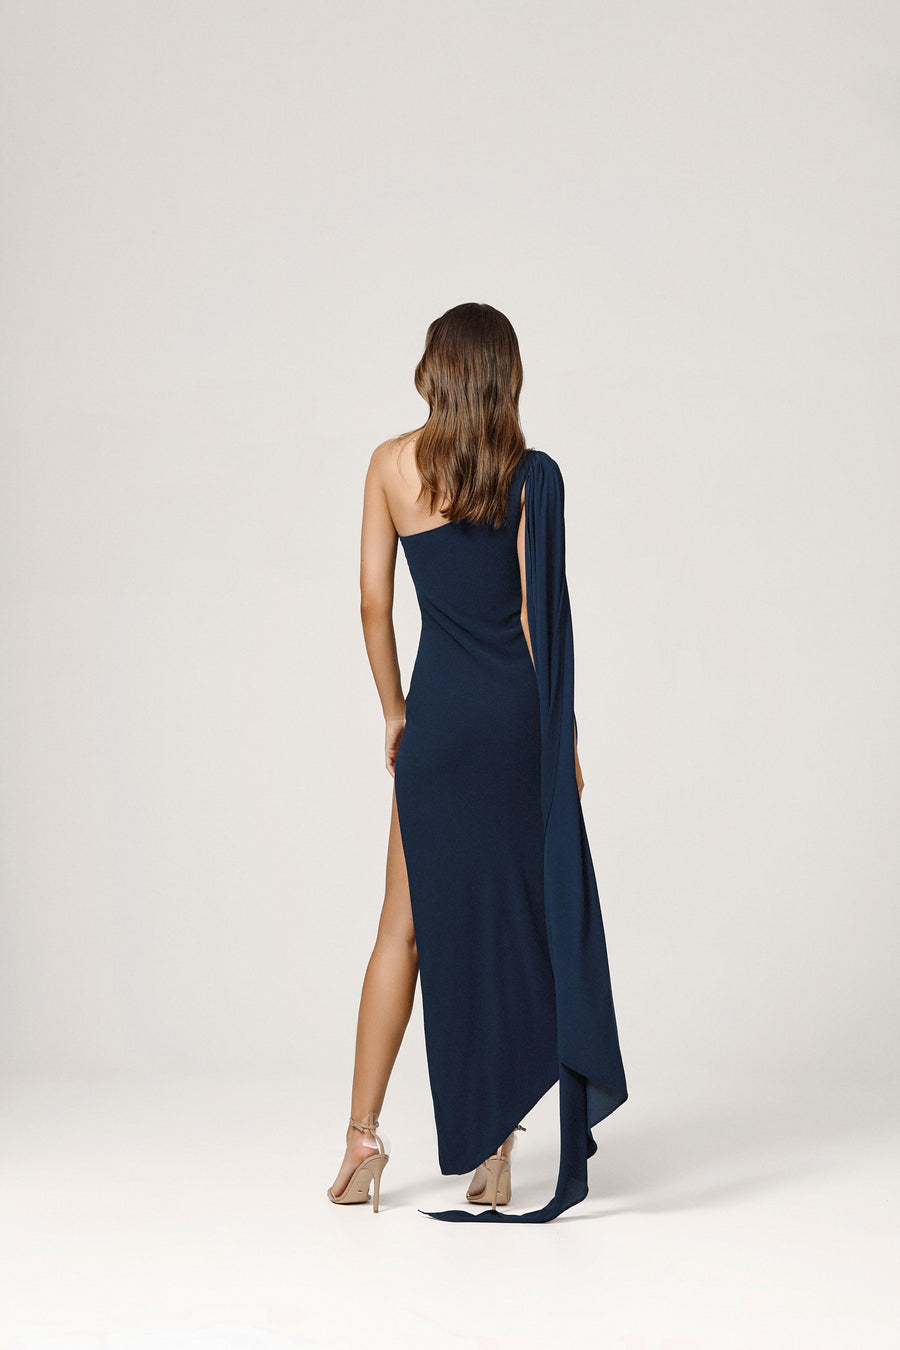 Riley Dress - Blue